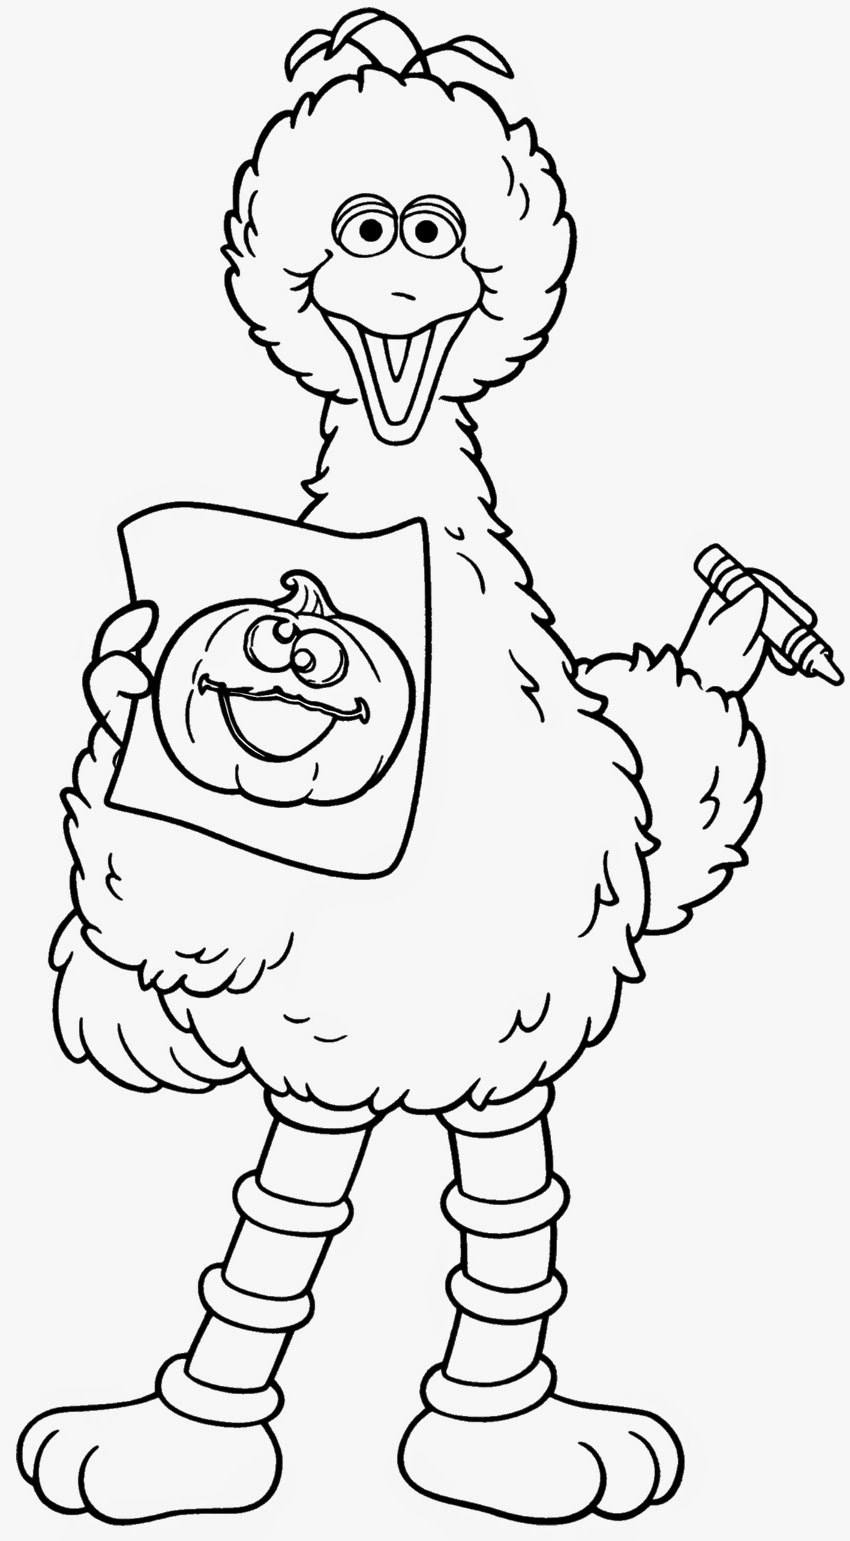 Sesame Street Big Bird Halloween Coloring Pages